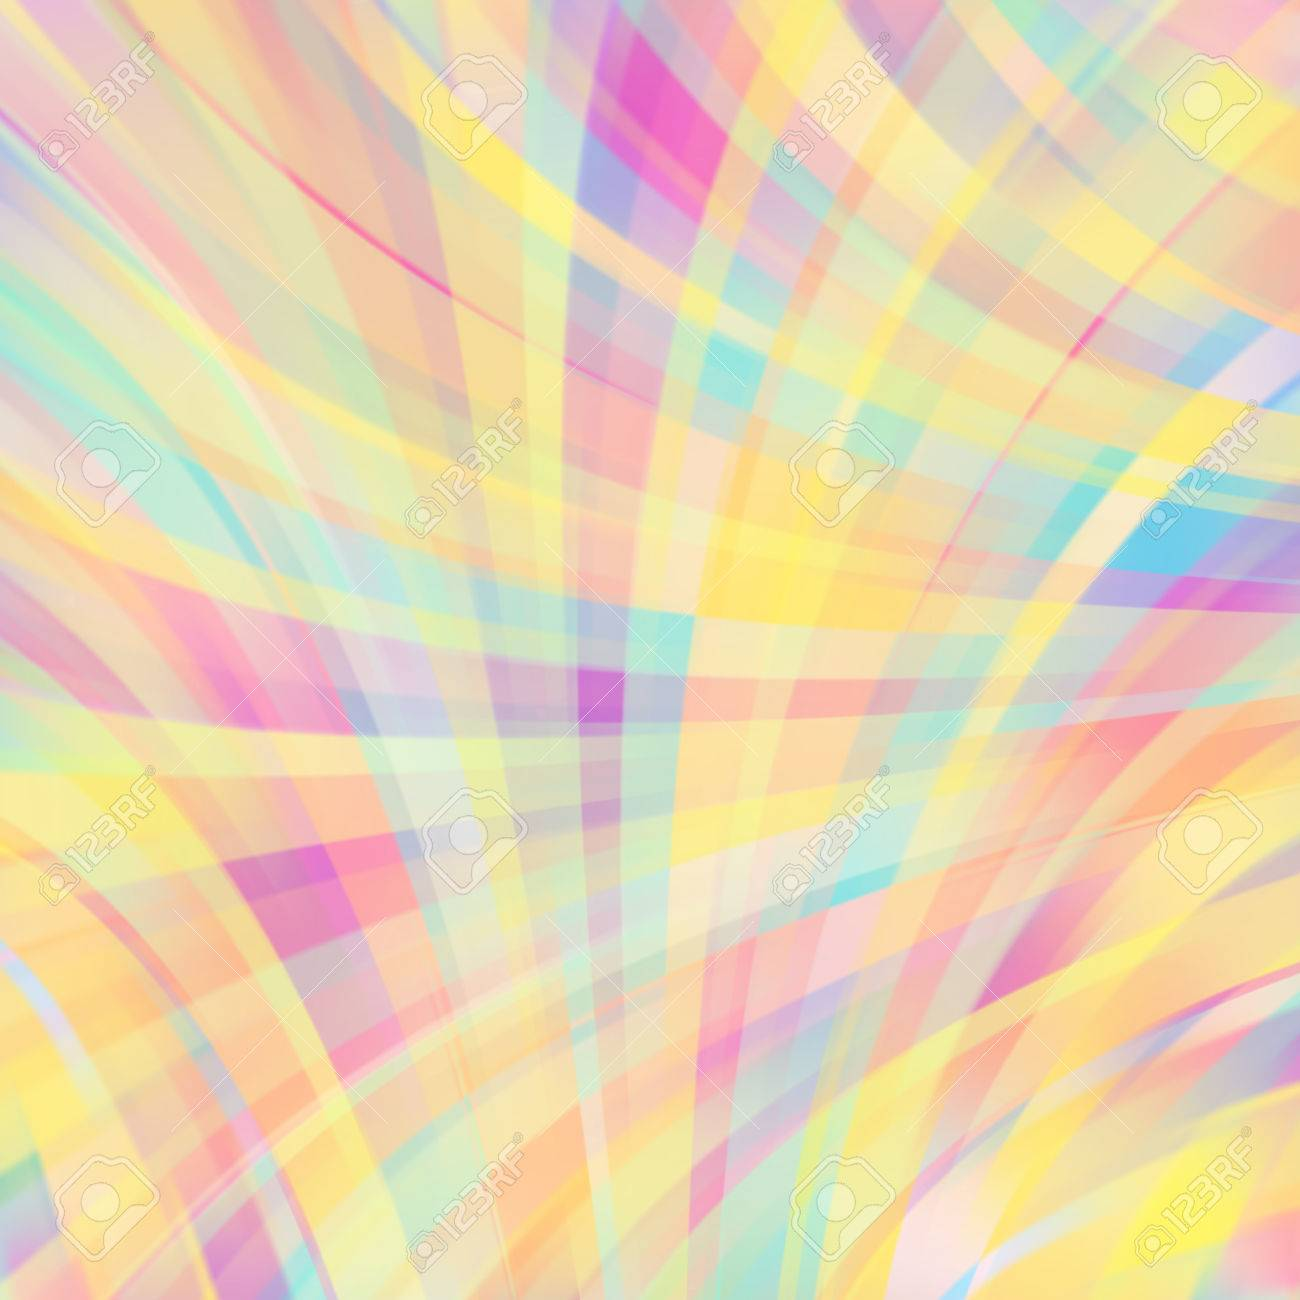 Abstract Technology Background Vector Wallpaper Stock Vectors Royalty Free Cliparts Vectors And Stock Illustration Image 61271271